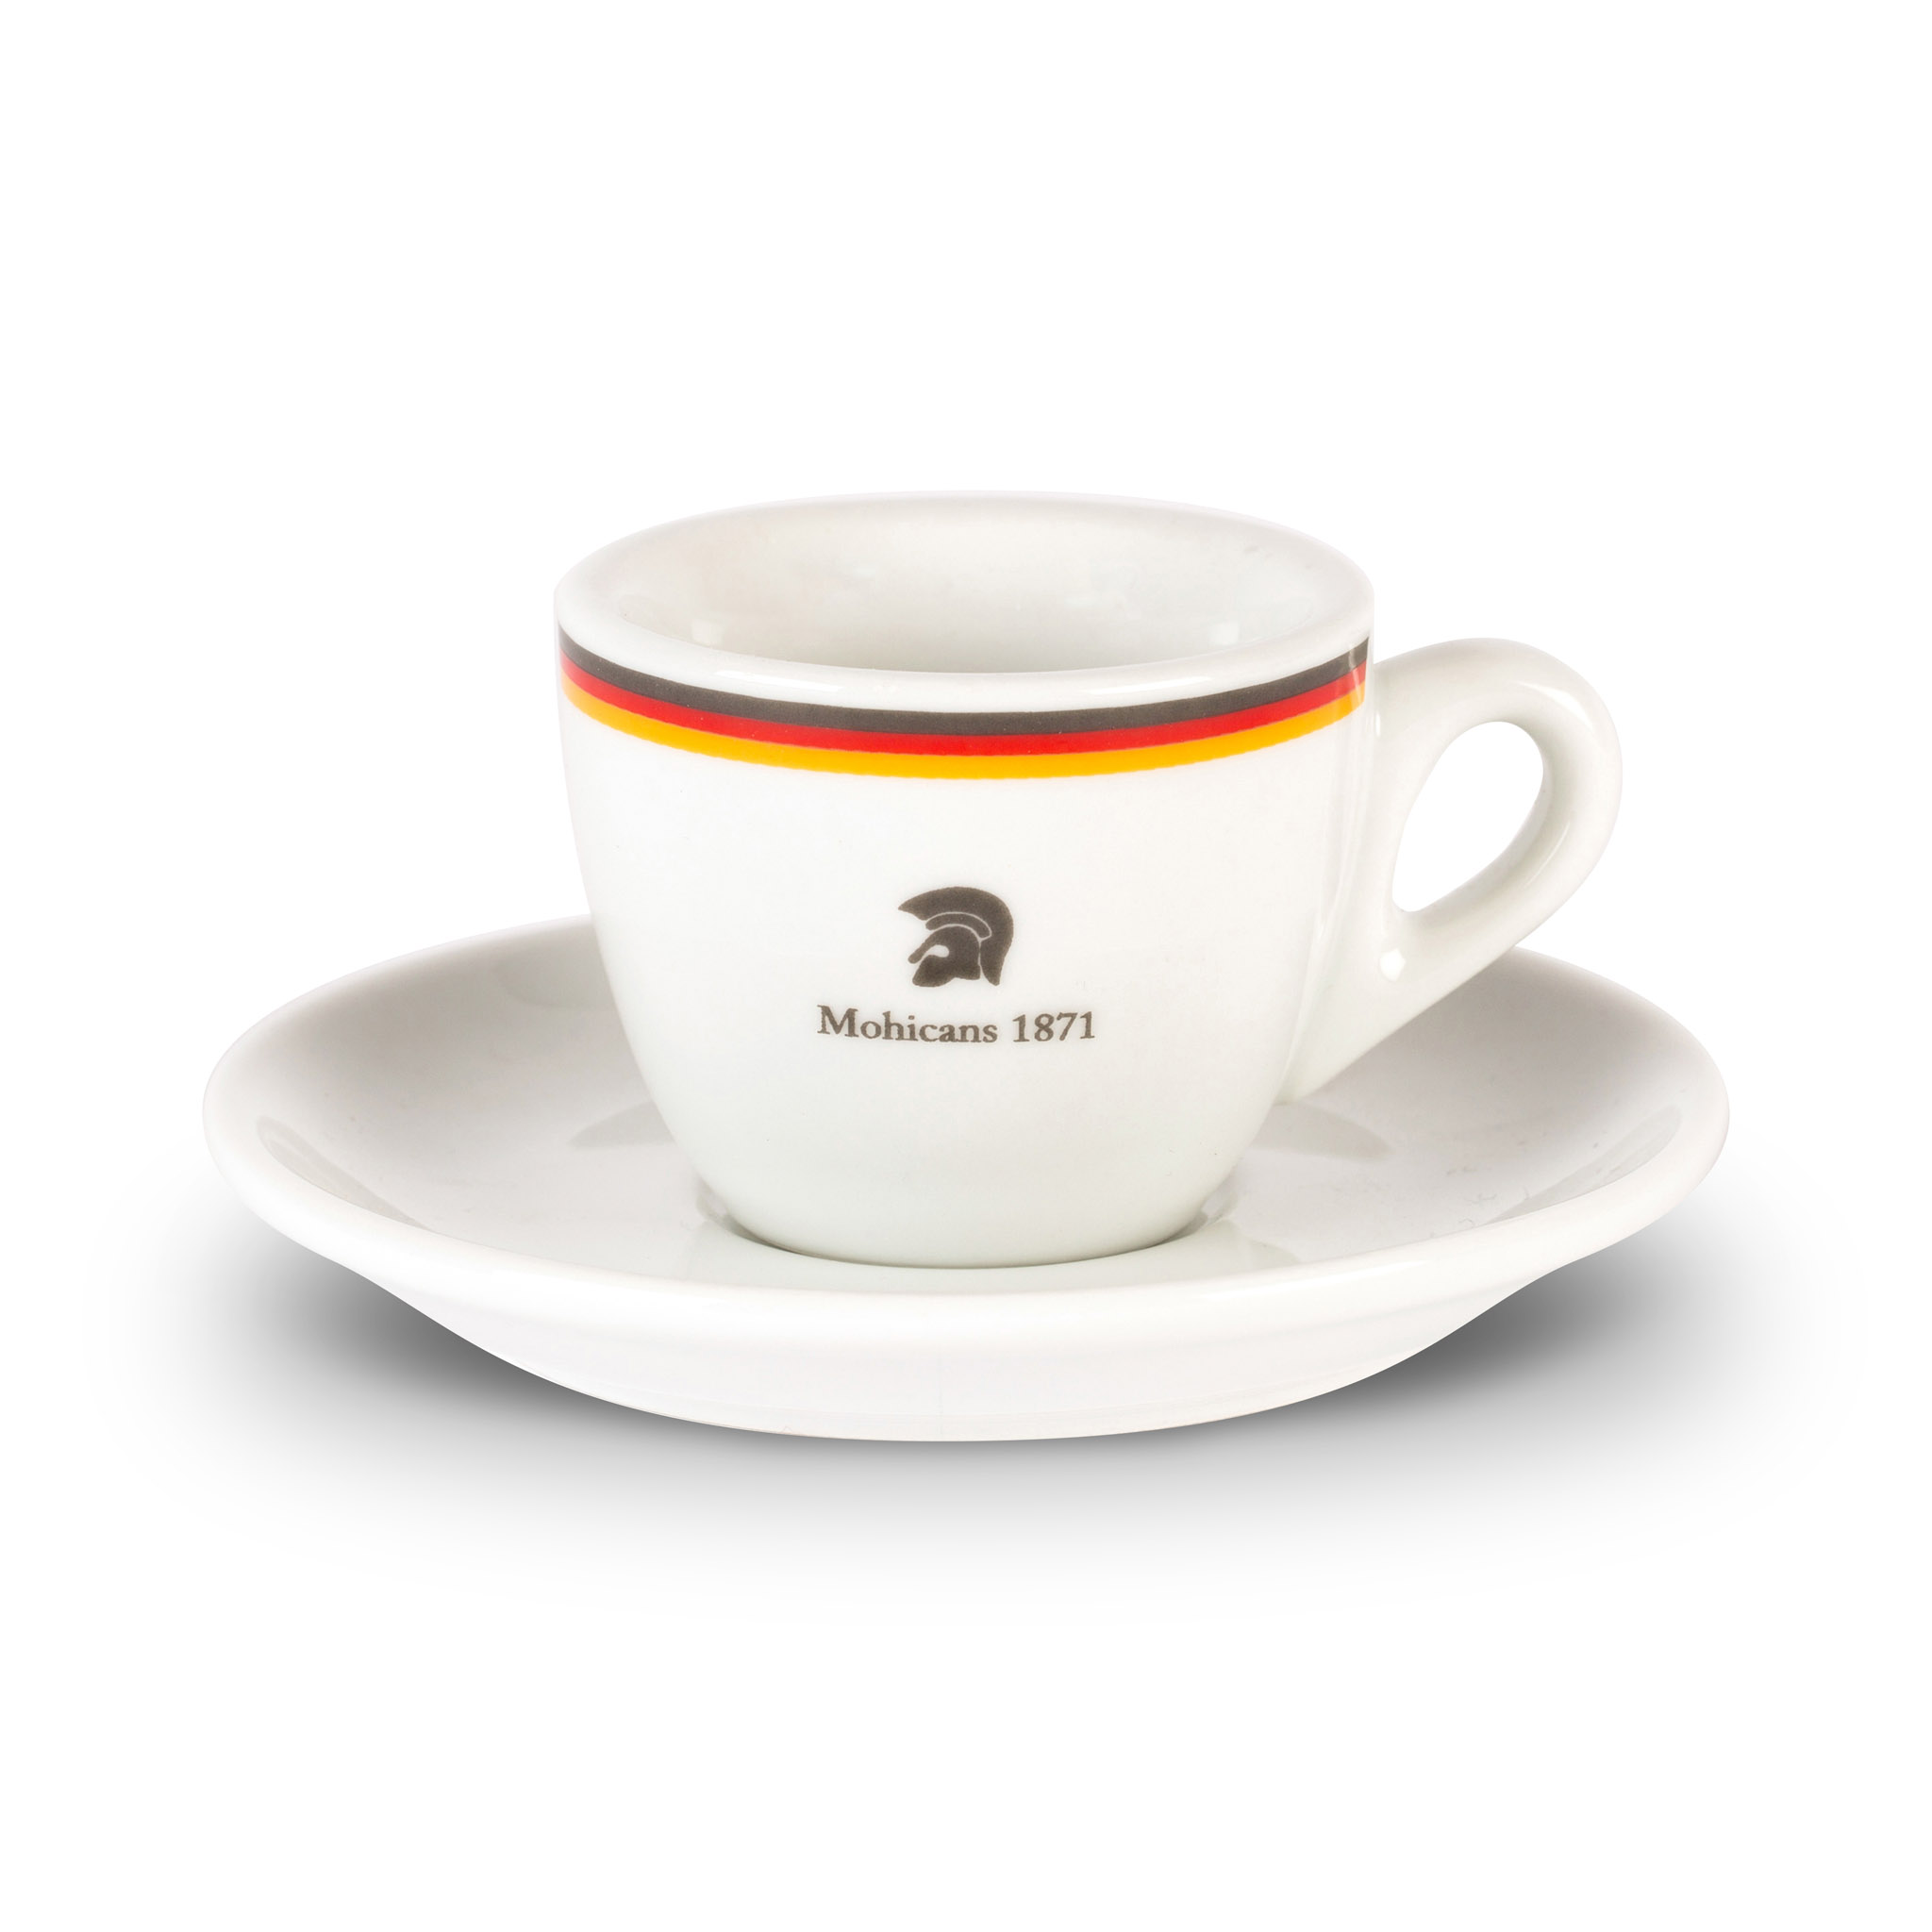 Mohicans espresso cup and saucer